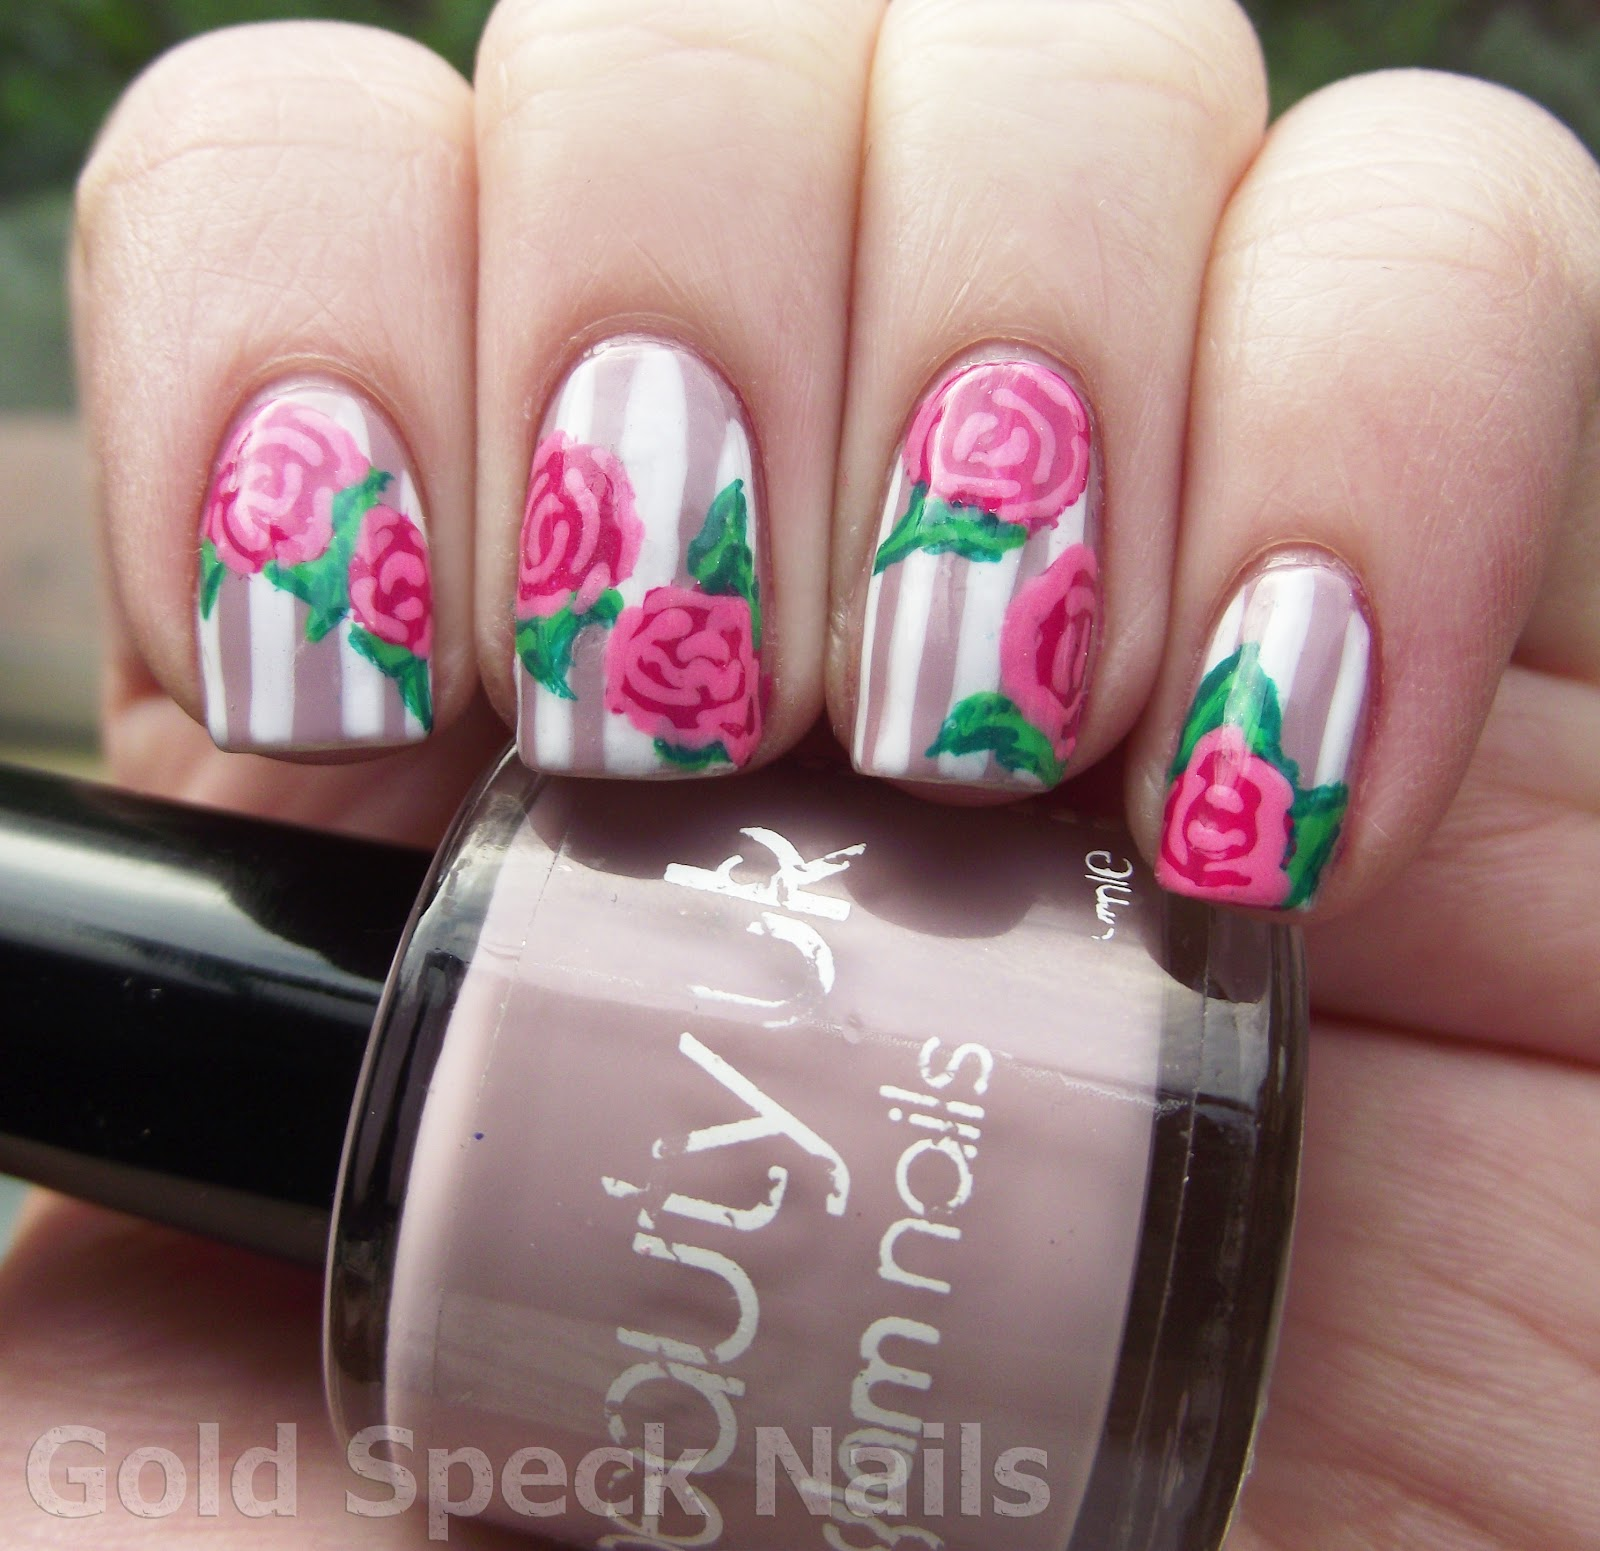 Gold Speck Nails: Stripes & Flowers